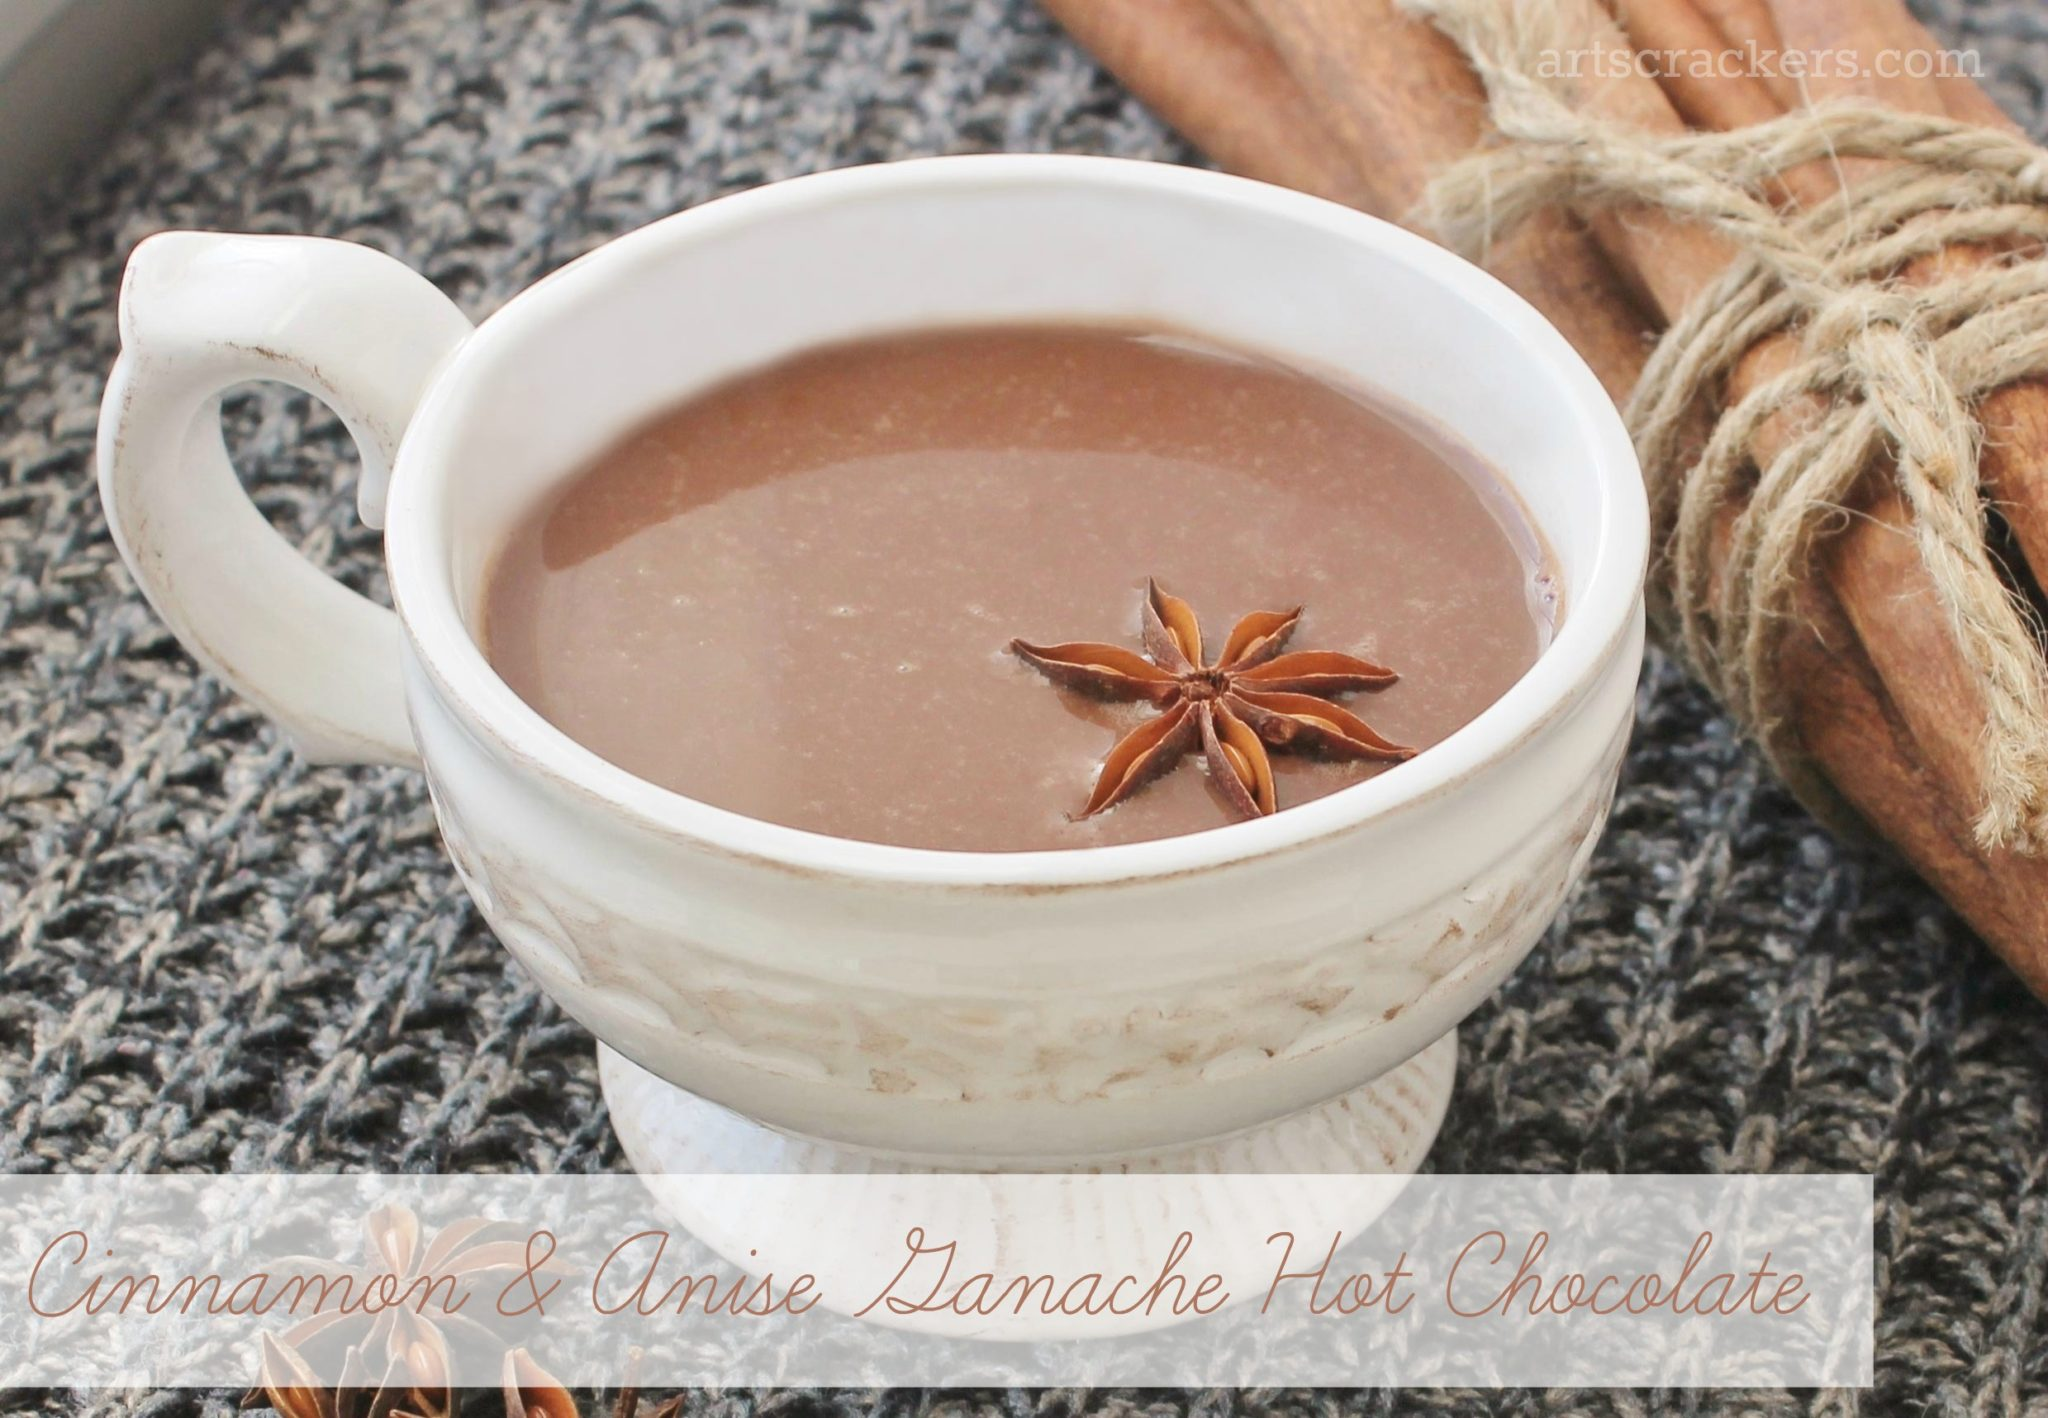 cinnamon-and-anise-ganache-hot chocolate 1